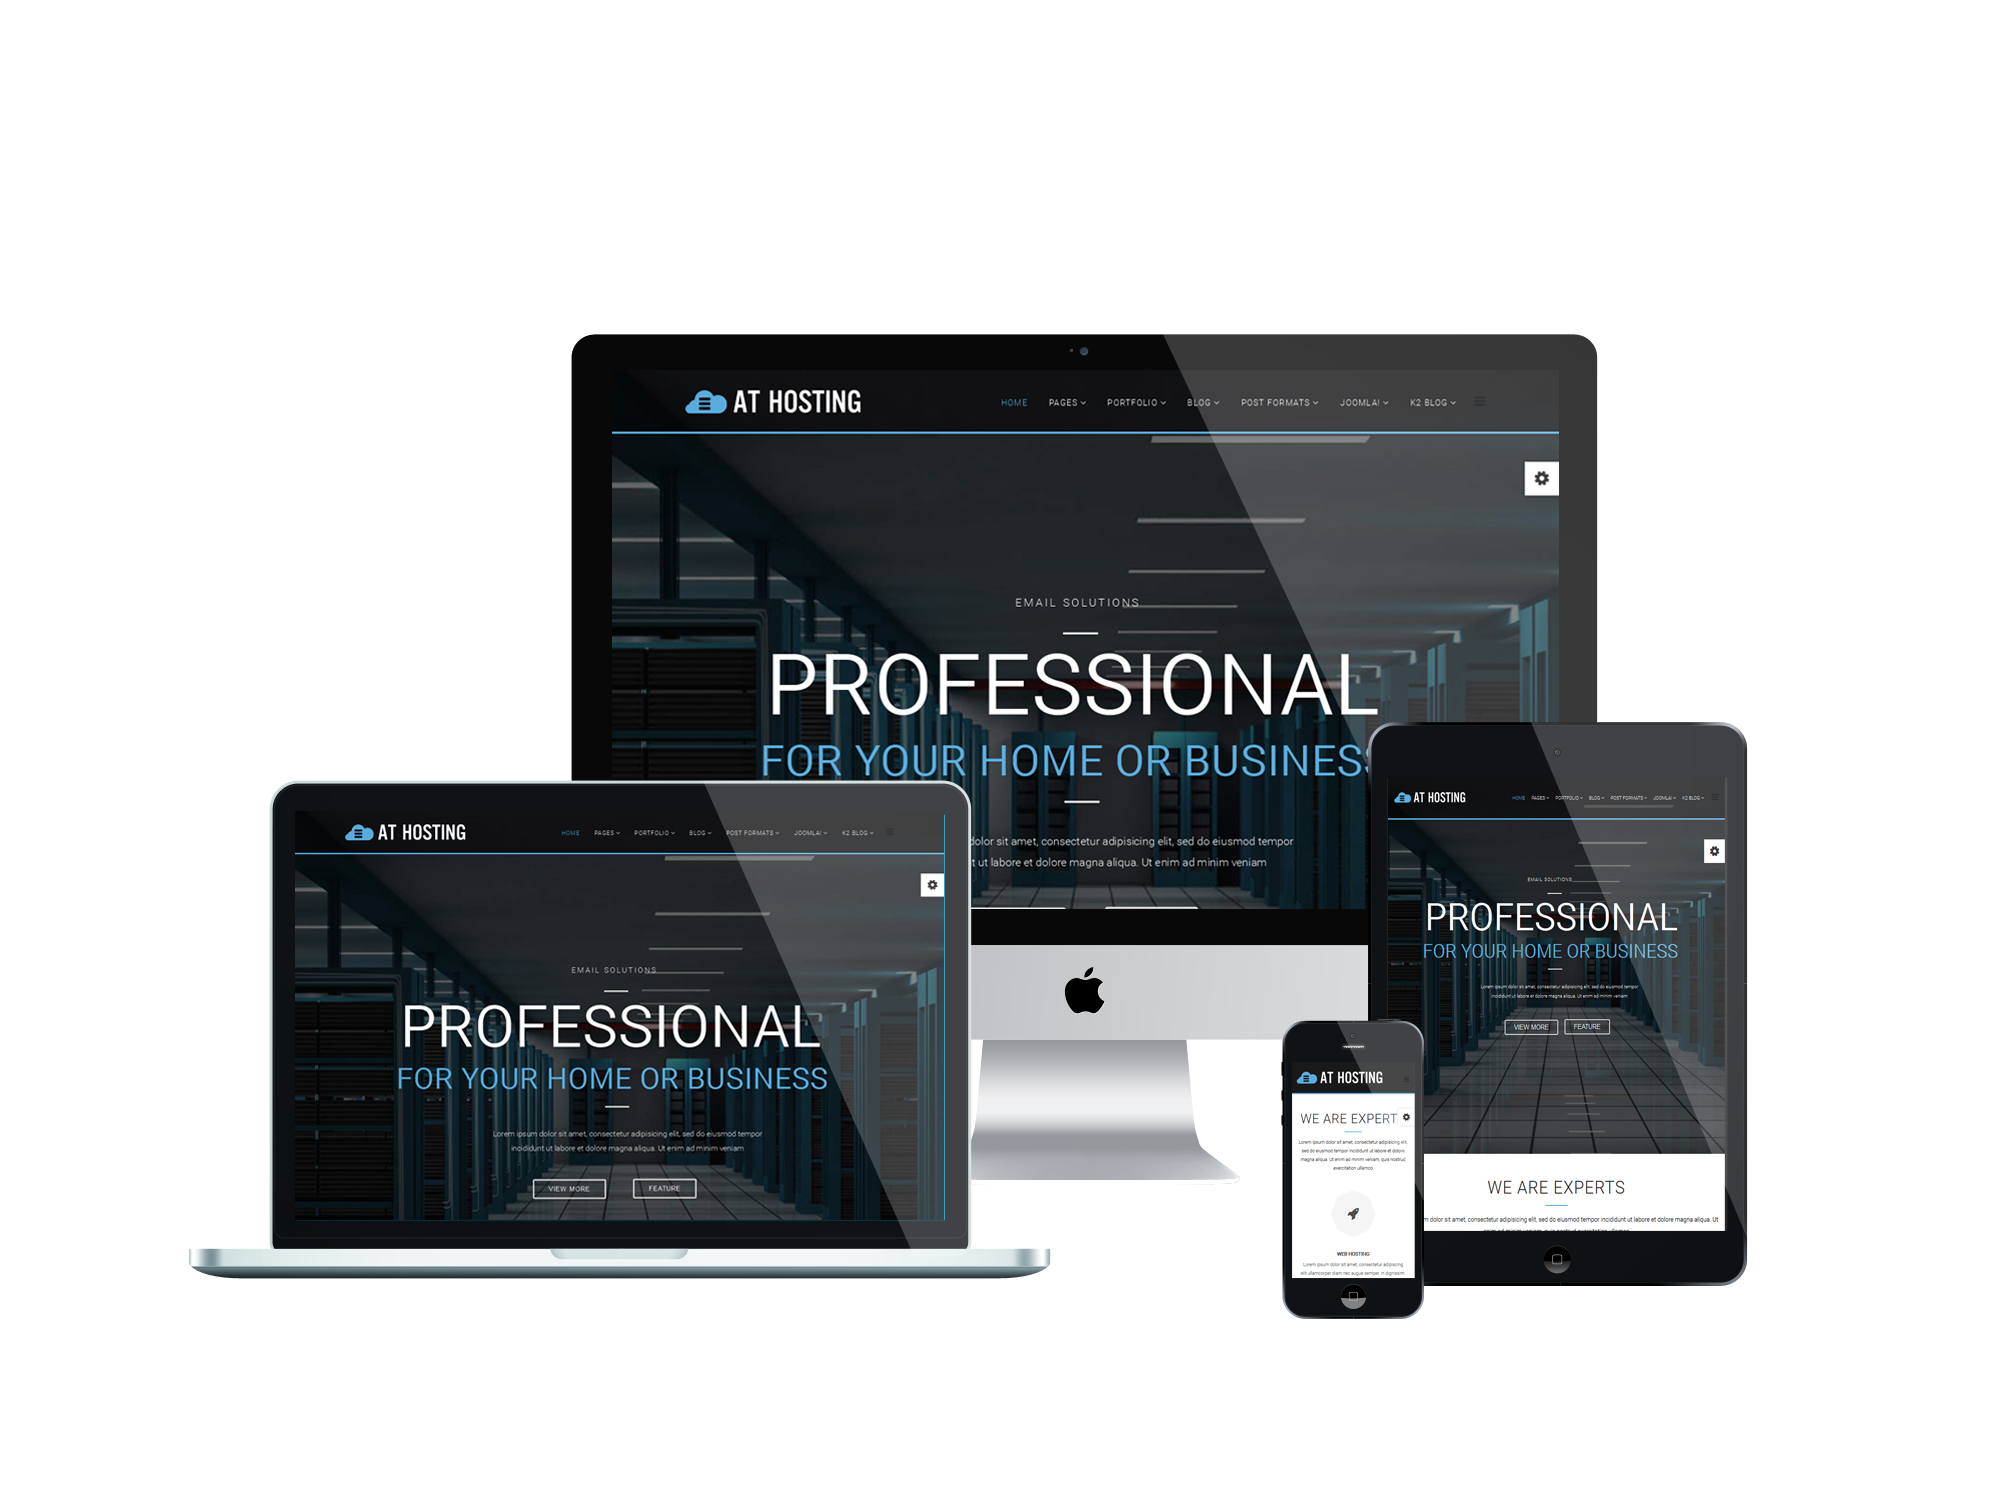 Joomla Luxury Templates at Hosting Joomla Template